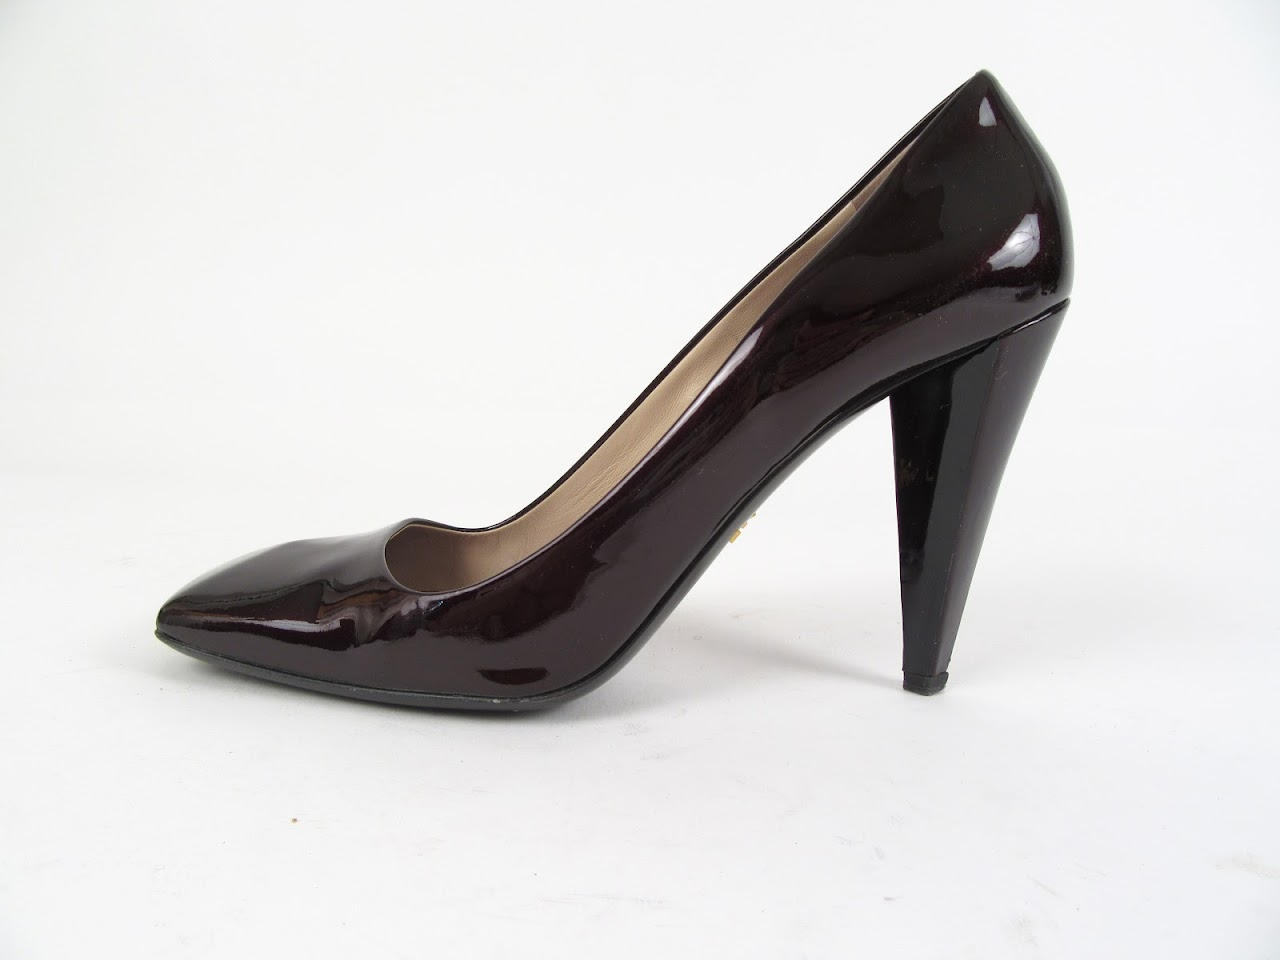 Prada Metallic Eggplant Pumps